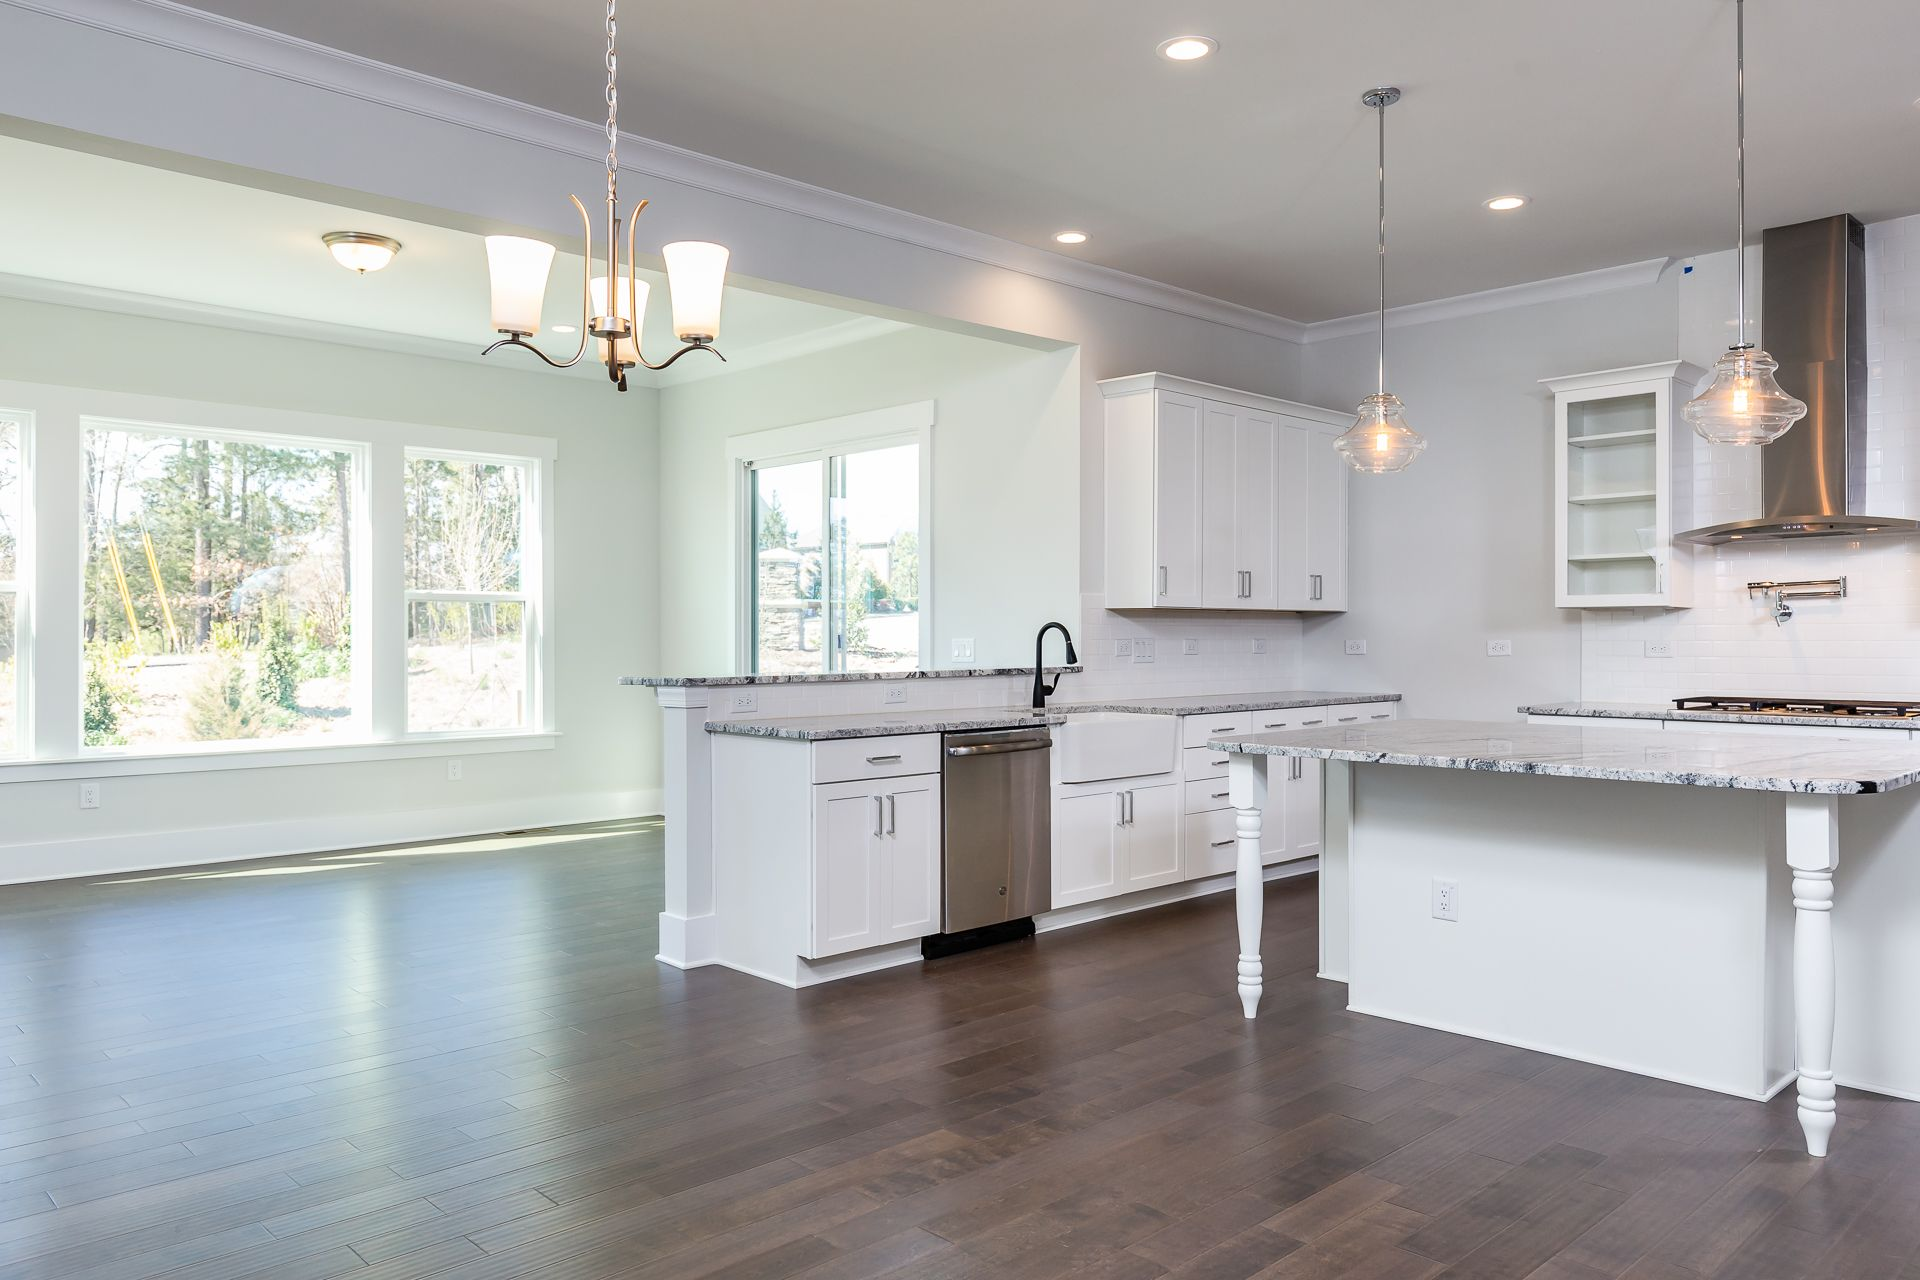 Kitchen-in-Windsor-at-Ridgefield Farms-in-Cary